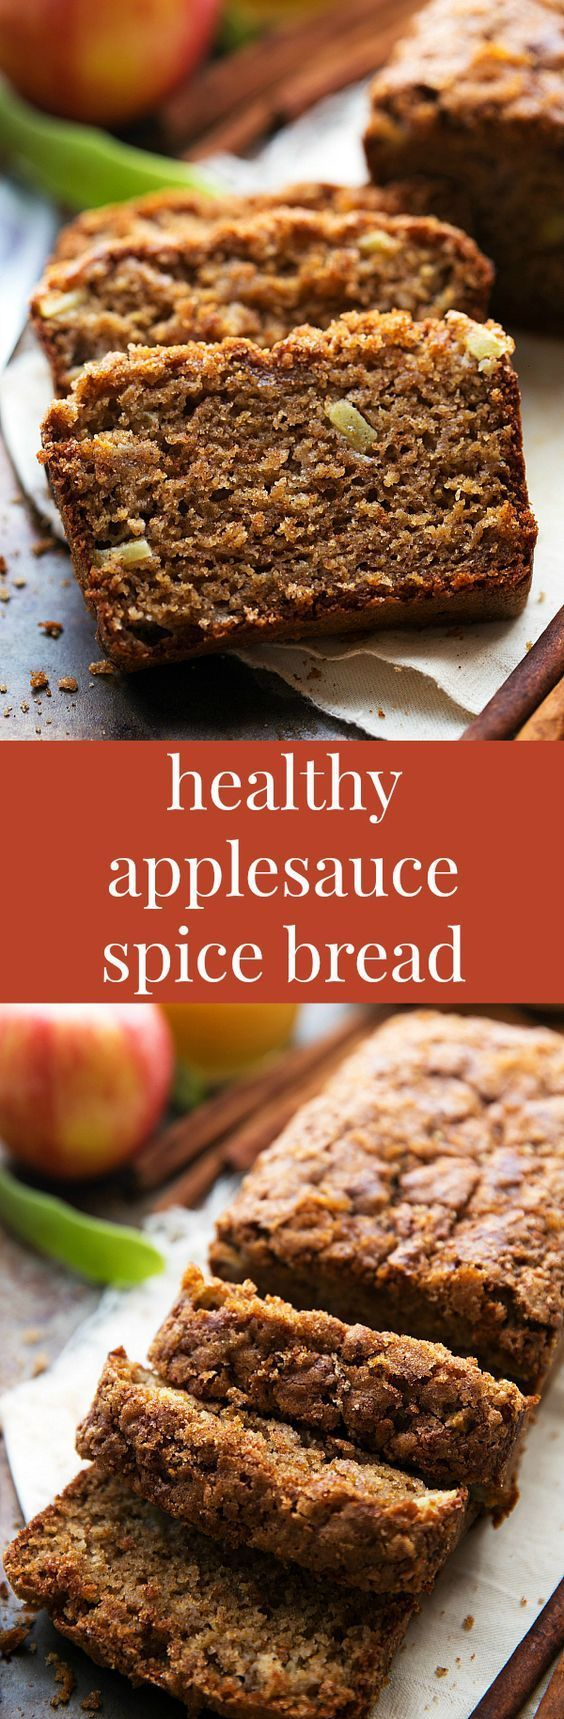 Healthier Applesauce spice bread - whole wheat with tons of healthier ingredient swaps